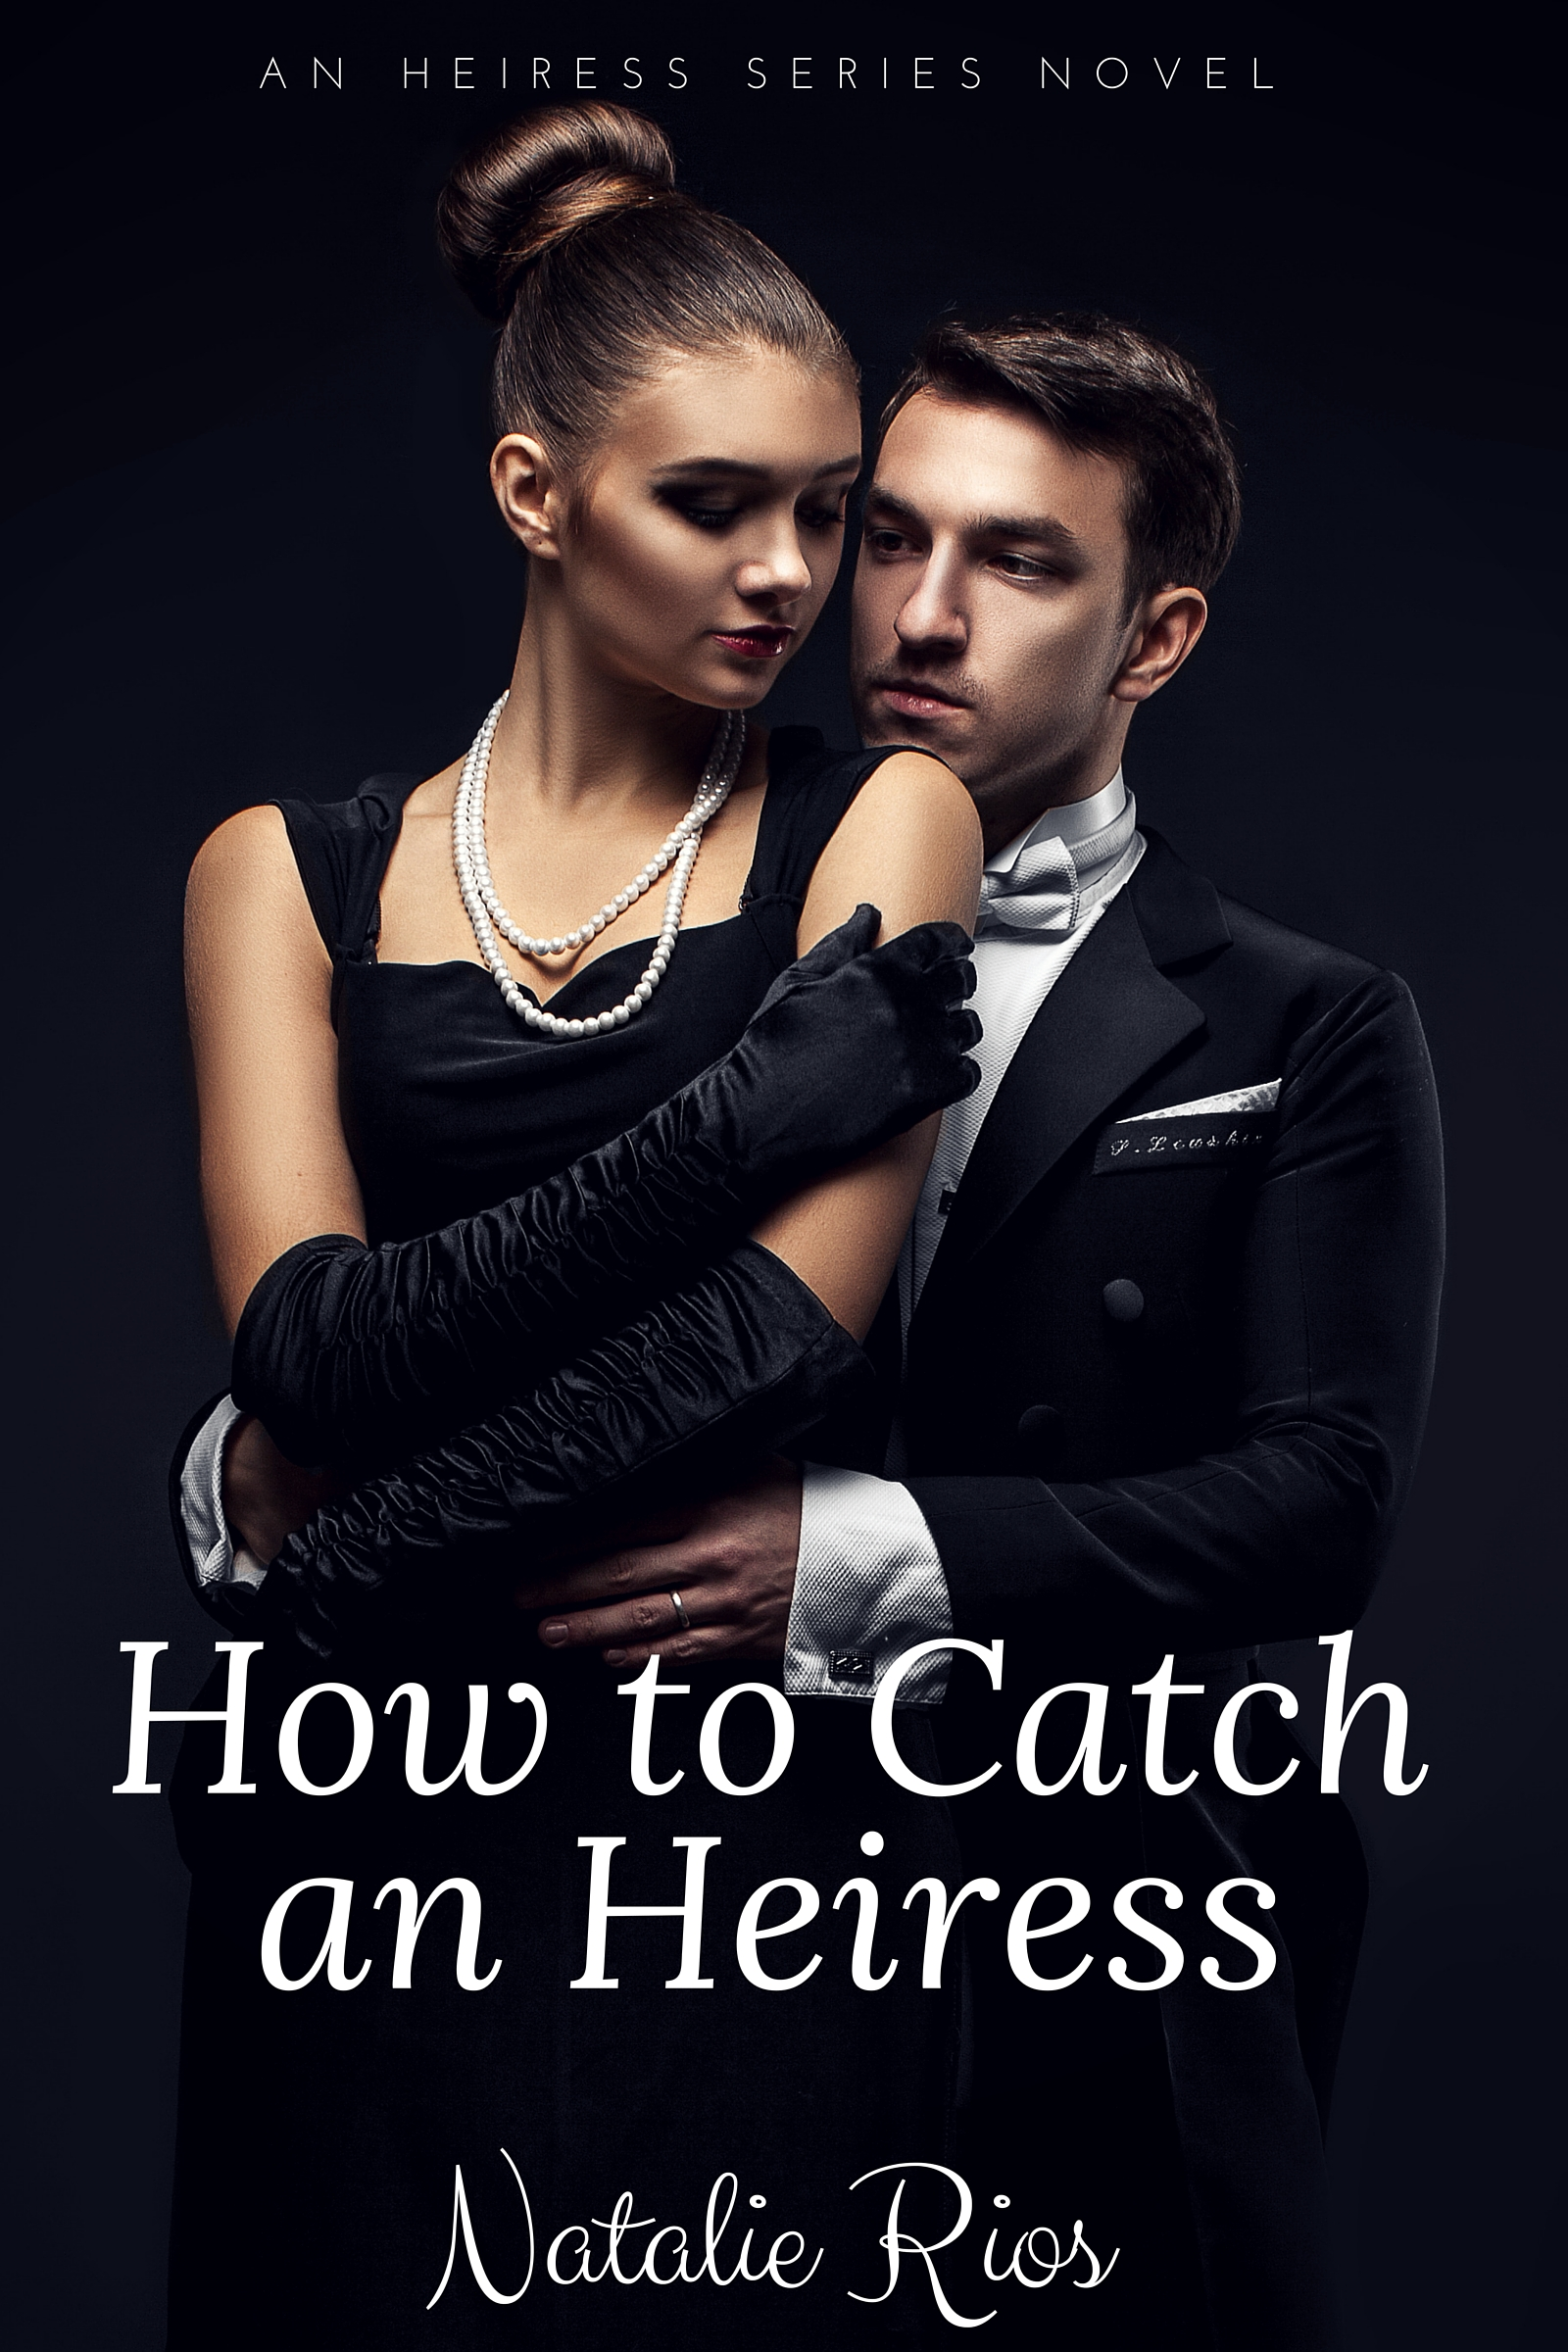 how-to-catch-an-heiress-cover_natalie-rios